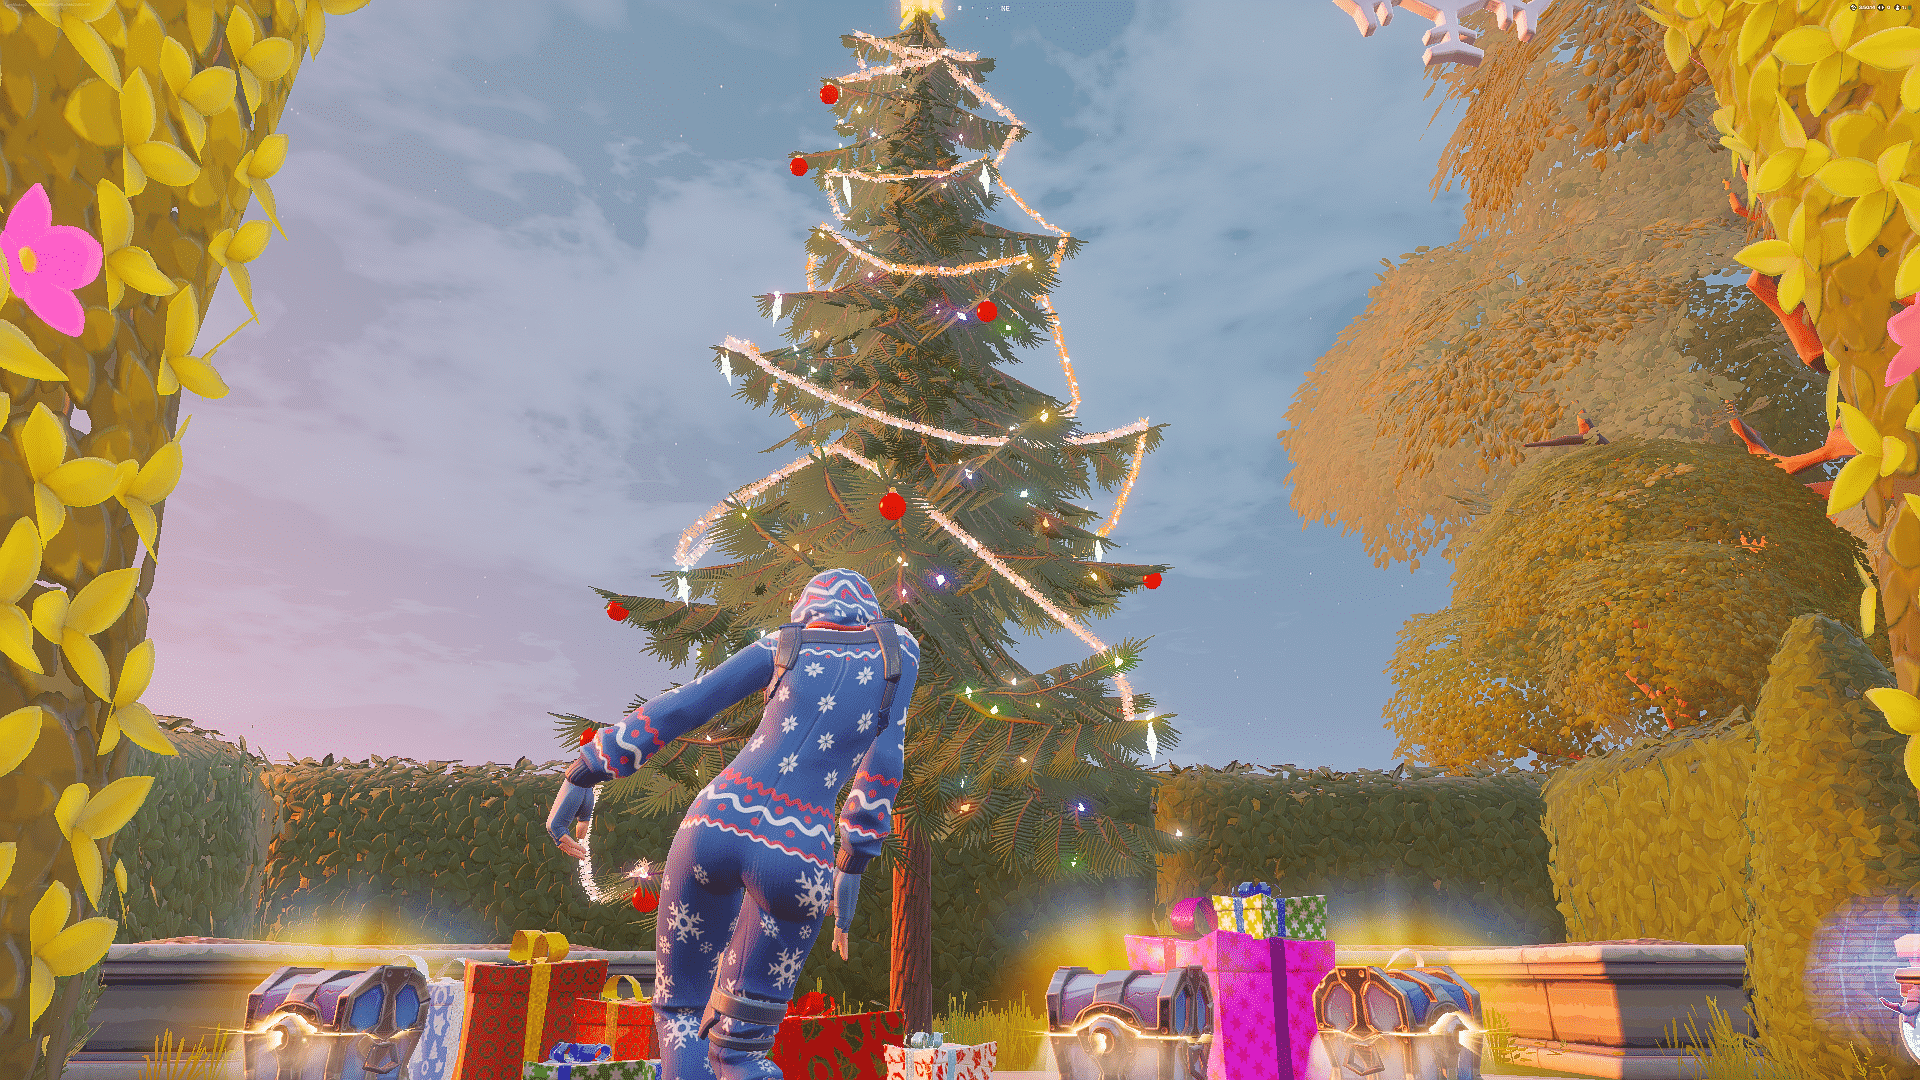 Fortnite player dancing at Holiday Tree